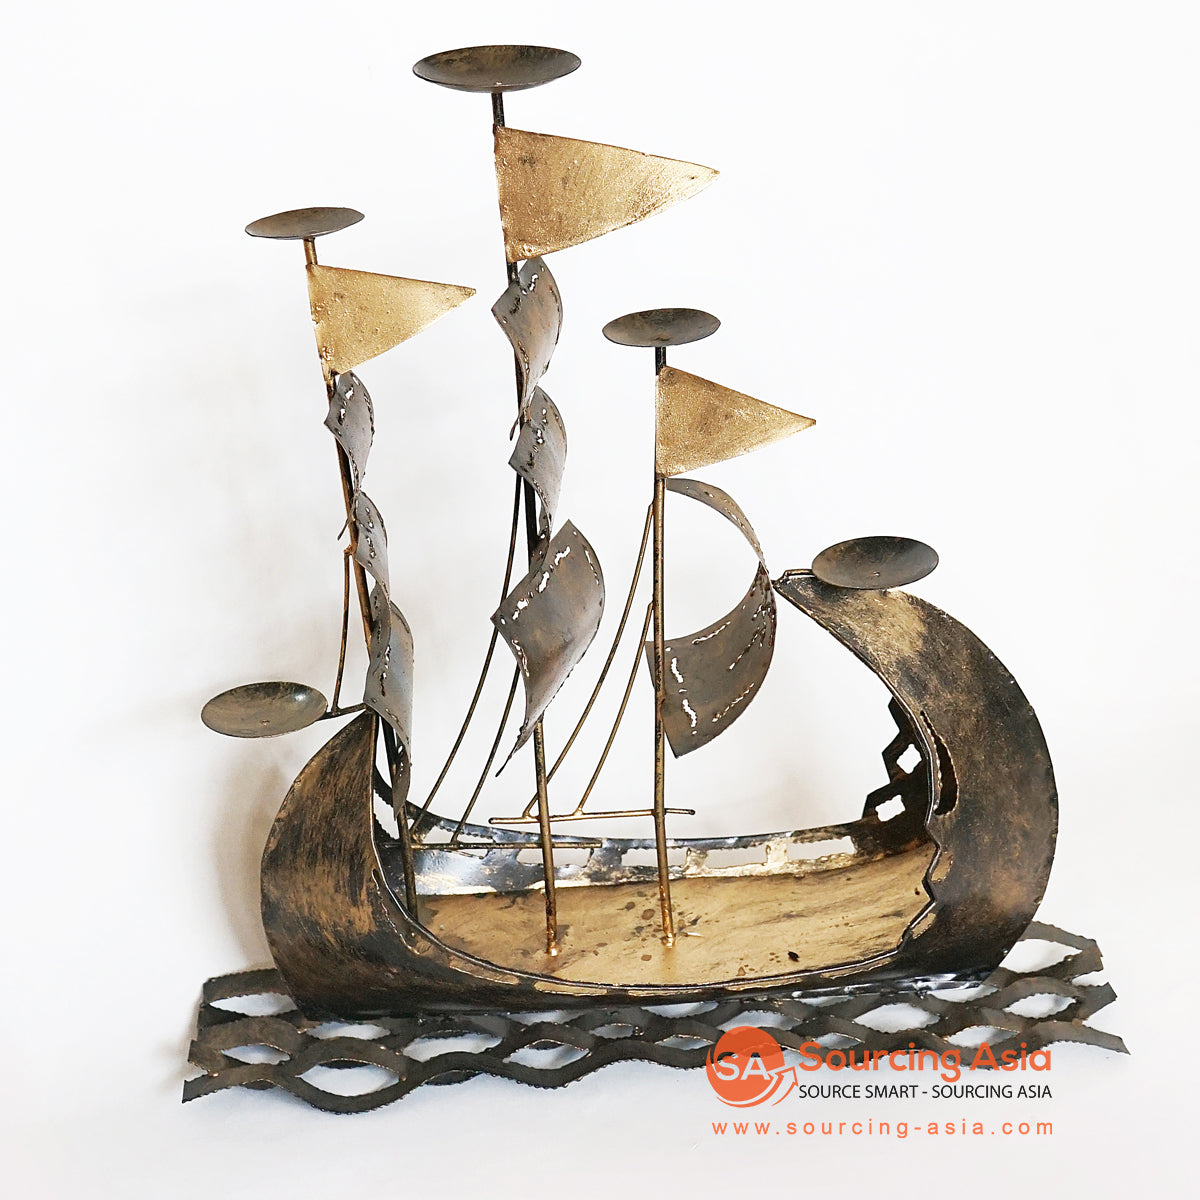 PEBC140 HAND PAINTED GOLD BLACK METAL SAILING BOAT DECORATION